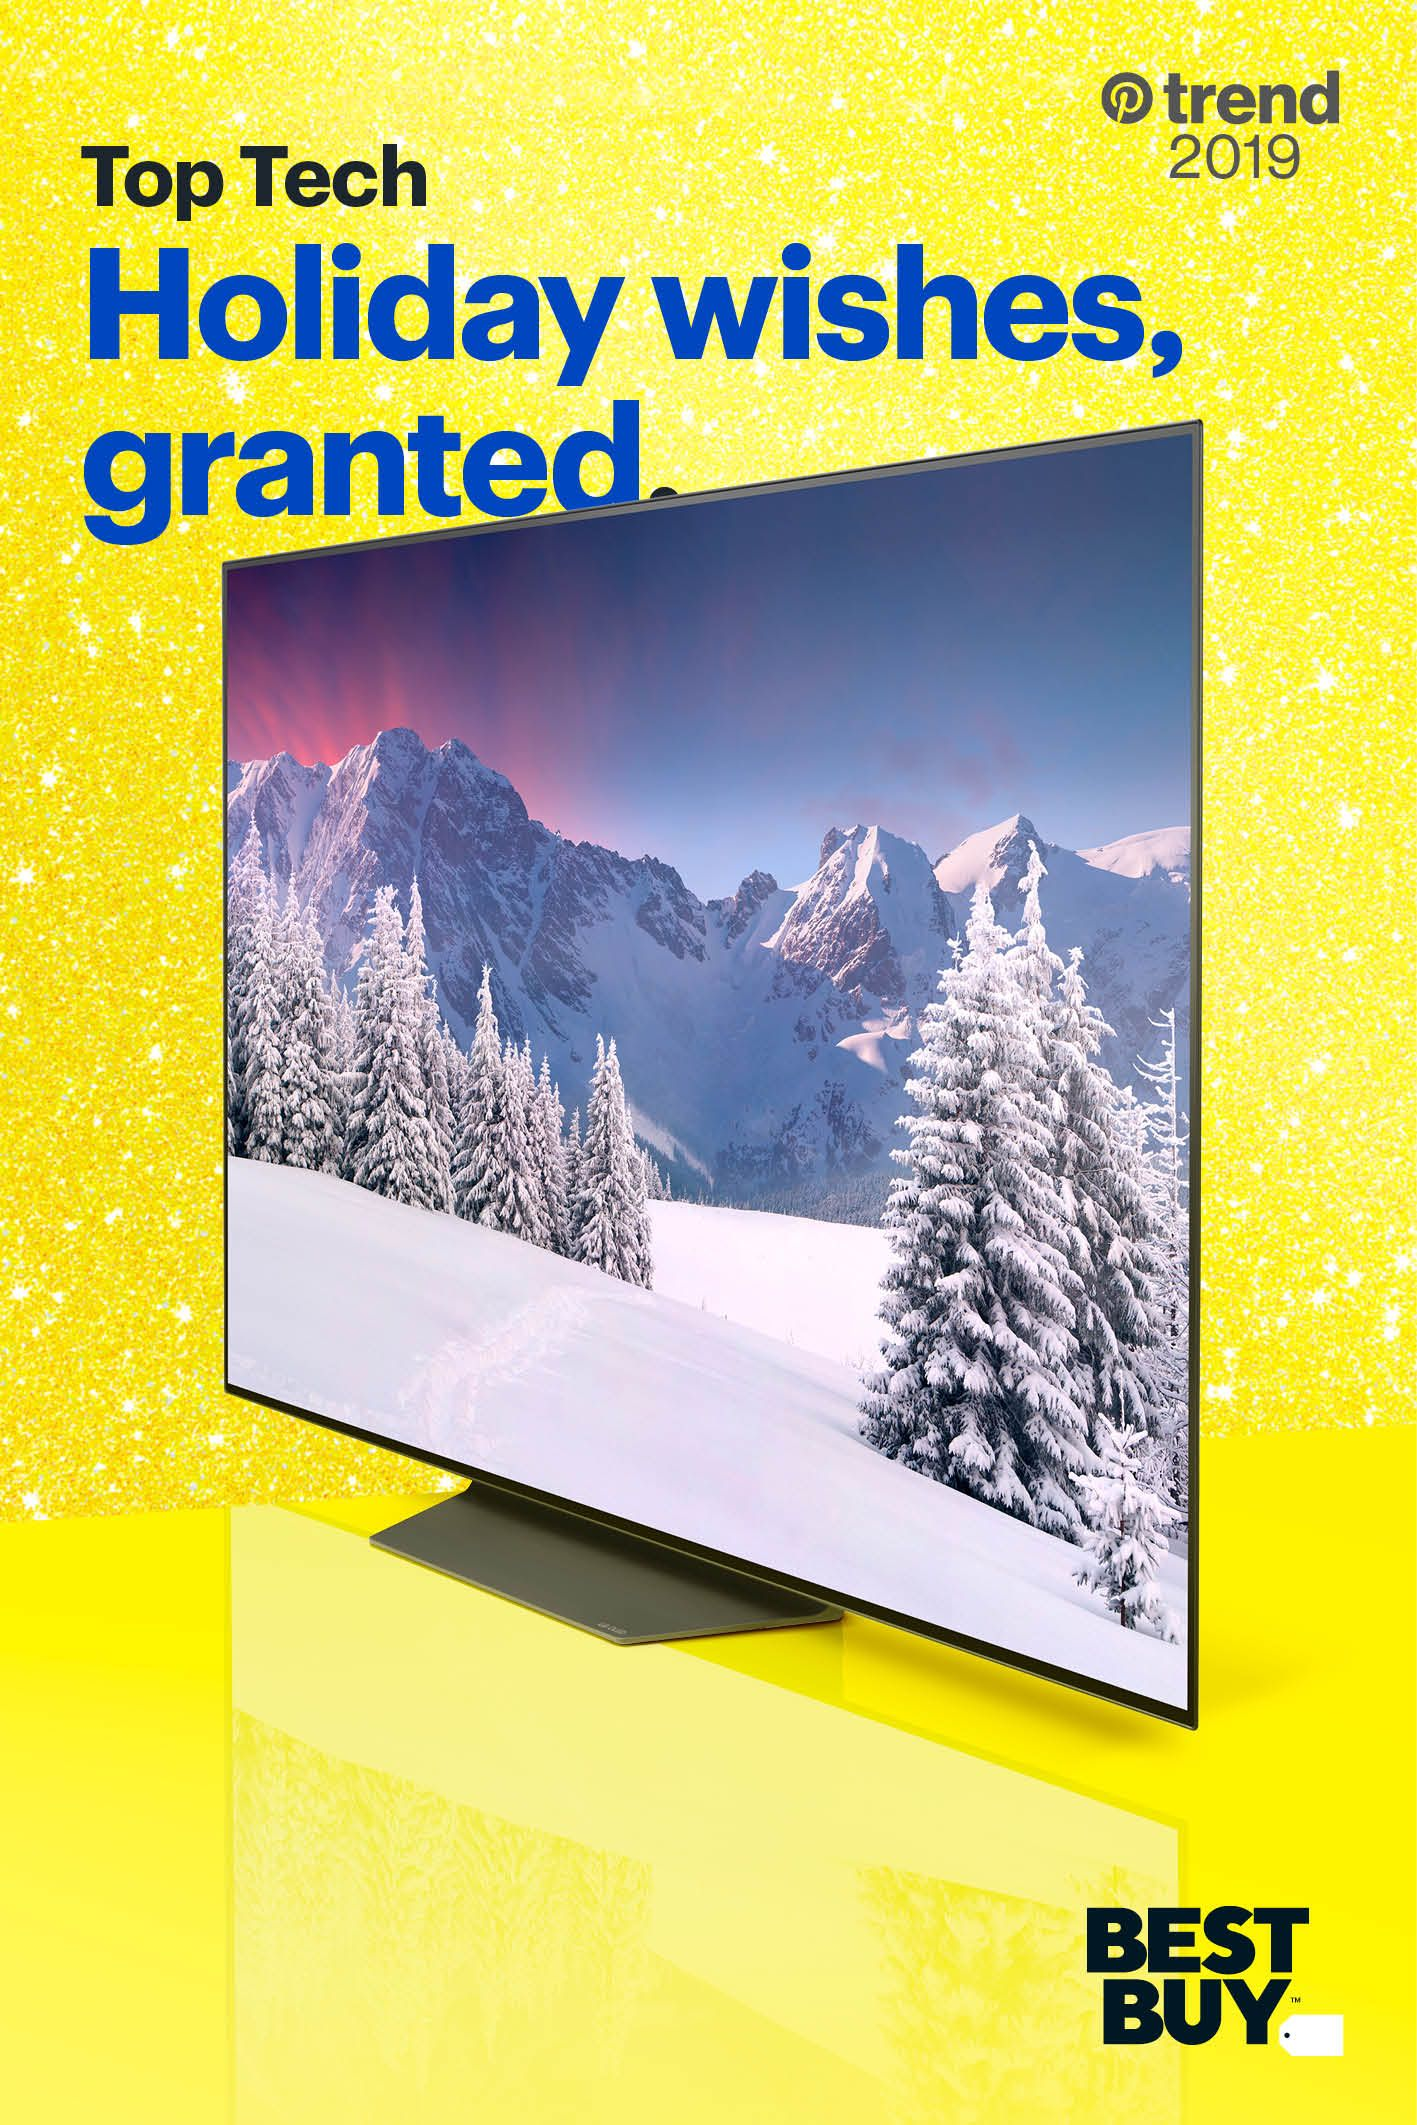 Get A Head Start On Your Holiday Shopping With Our Top Tech Gifts From Oled 4k Tvs To Ultra Thin Laptop Photoshop Design Ideas Top Tech Gifts Name Card Design